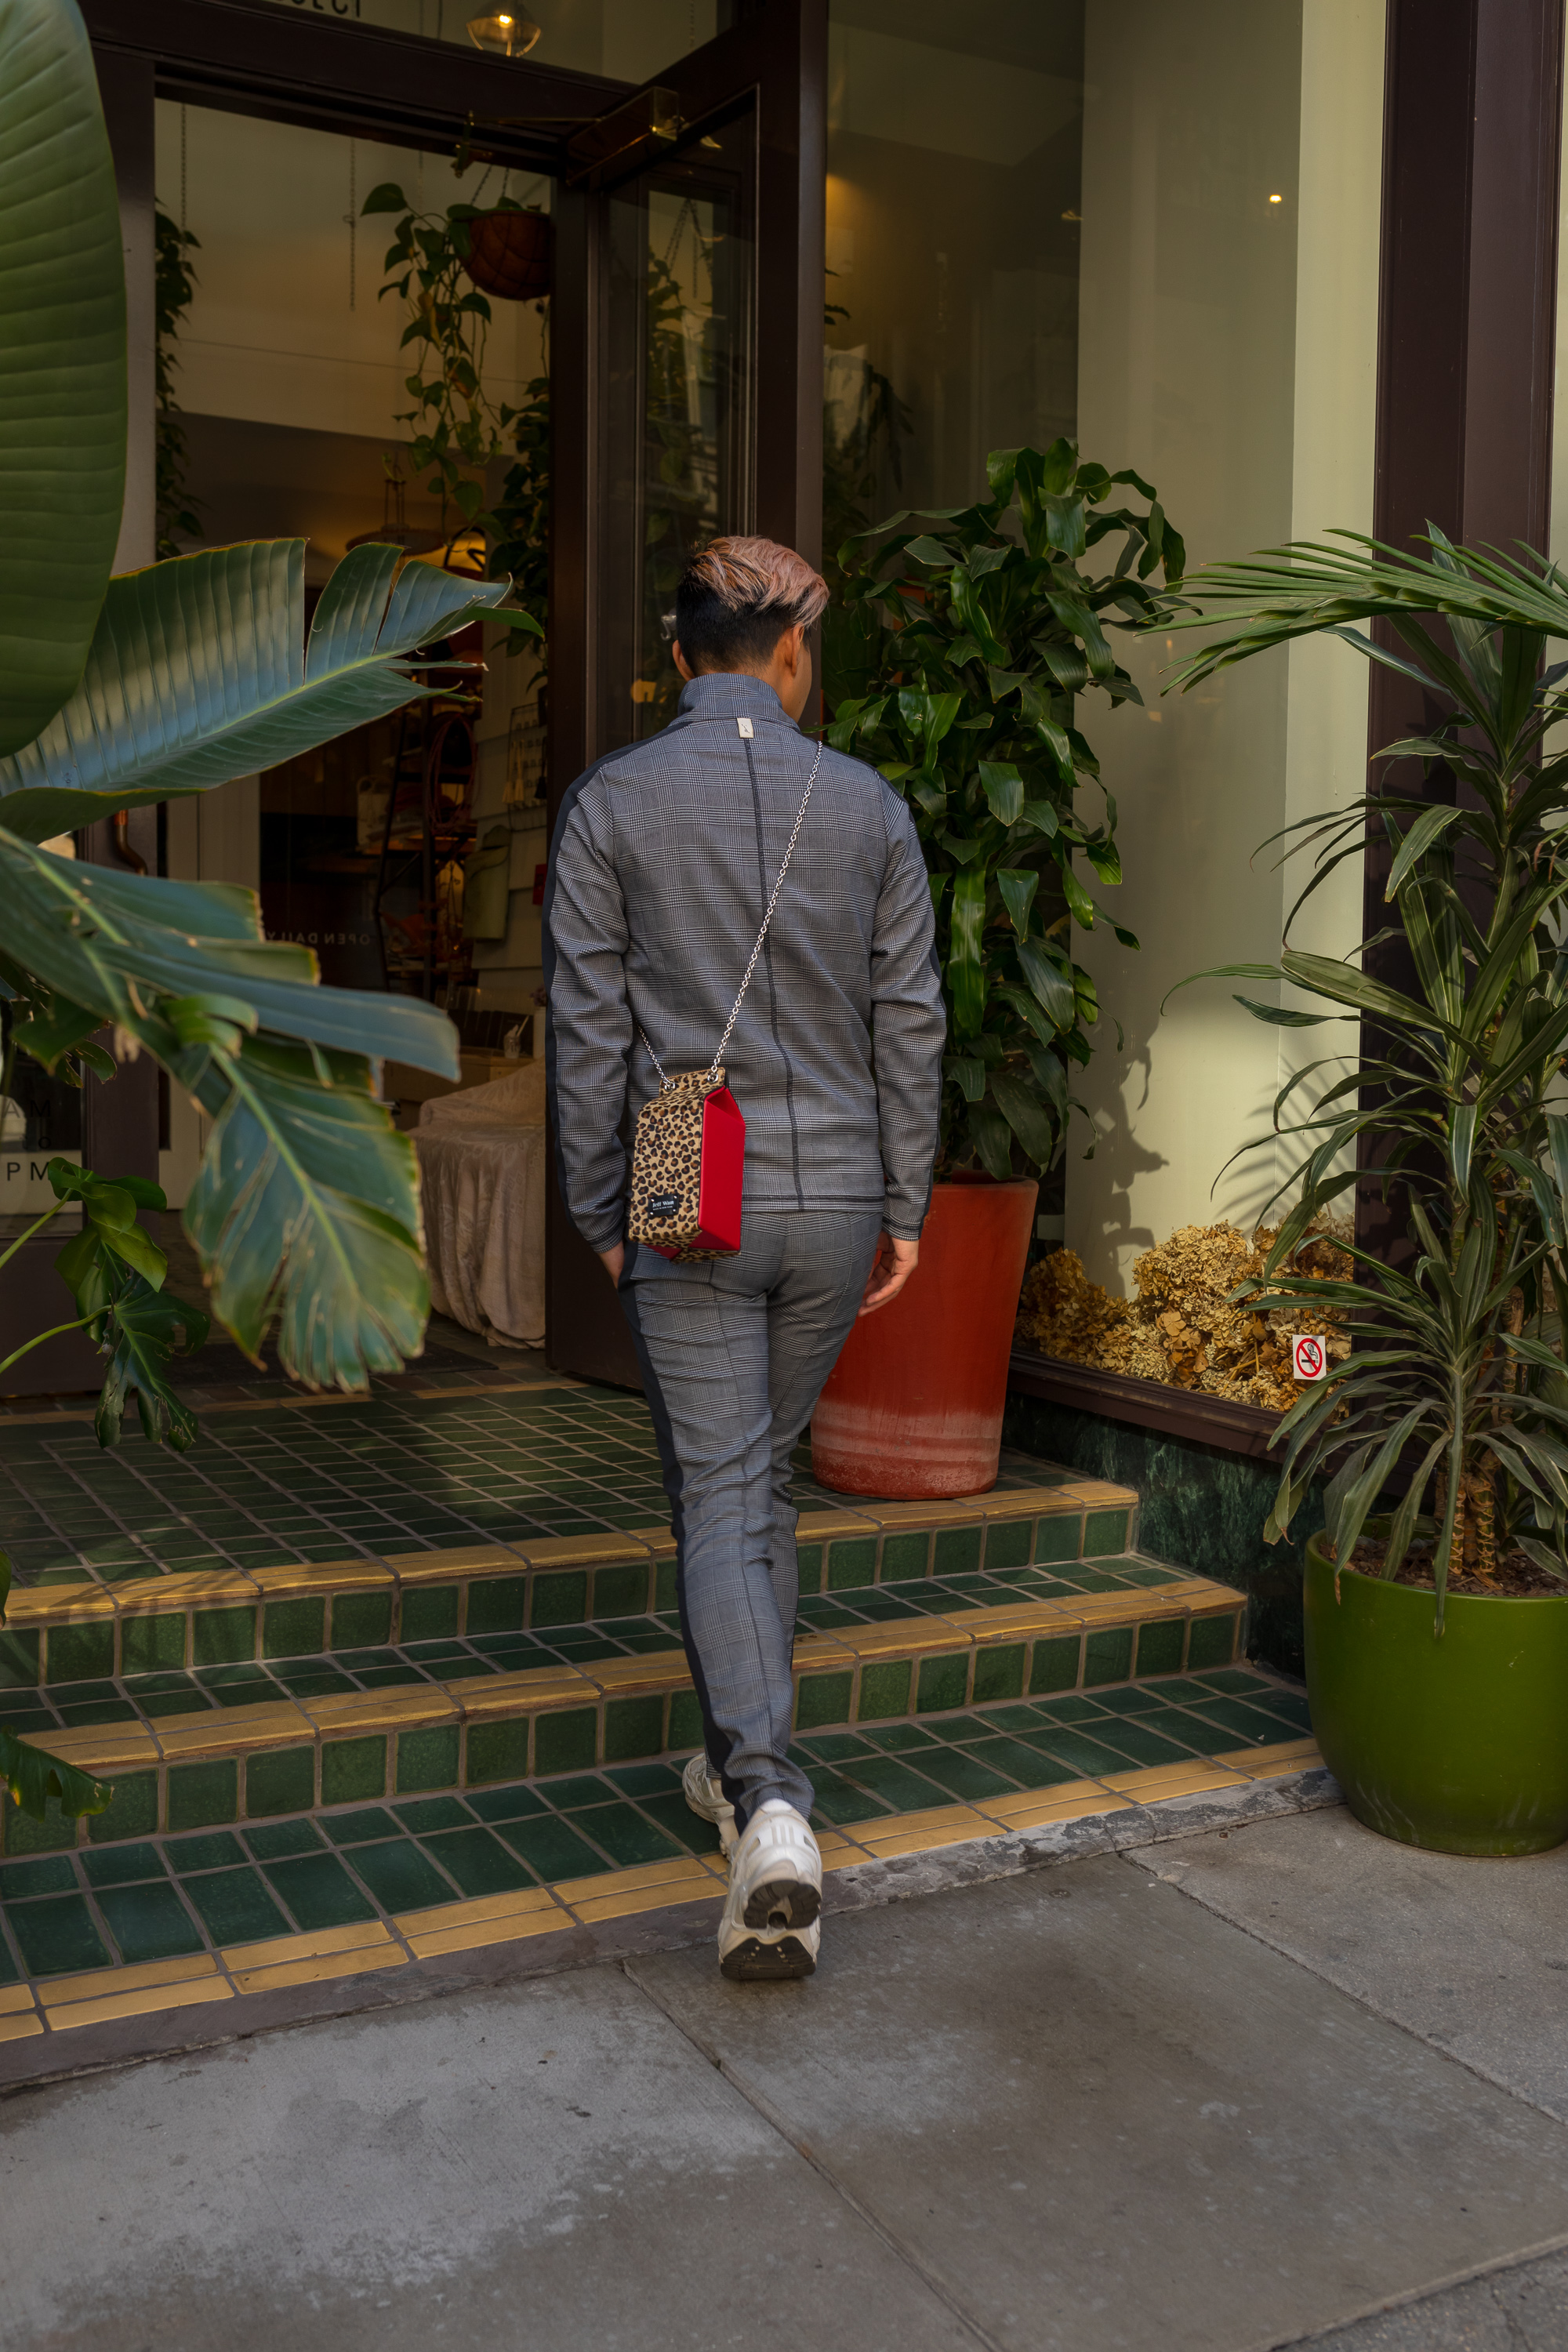 MYBELONGING-UBER-DOORS-ARE-ALWAYS-OPENING-DOWNTOWN-LOS-ANGELES-STREETSTYLE-PHOTOGRAPHY21.jpg